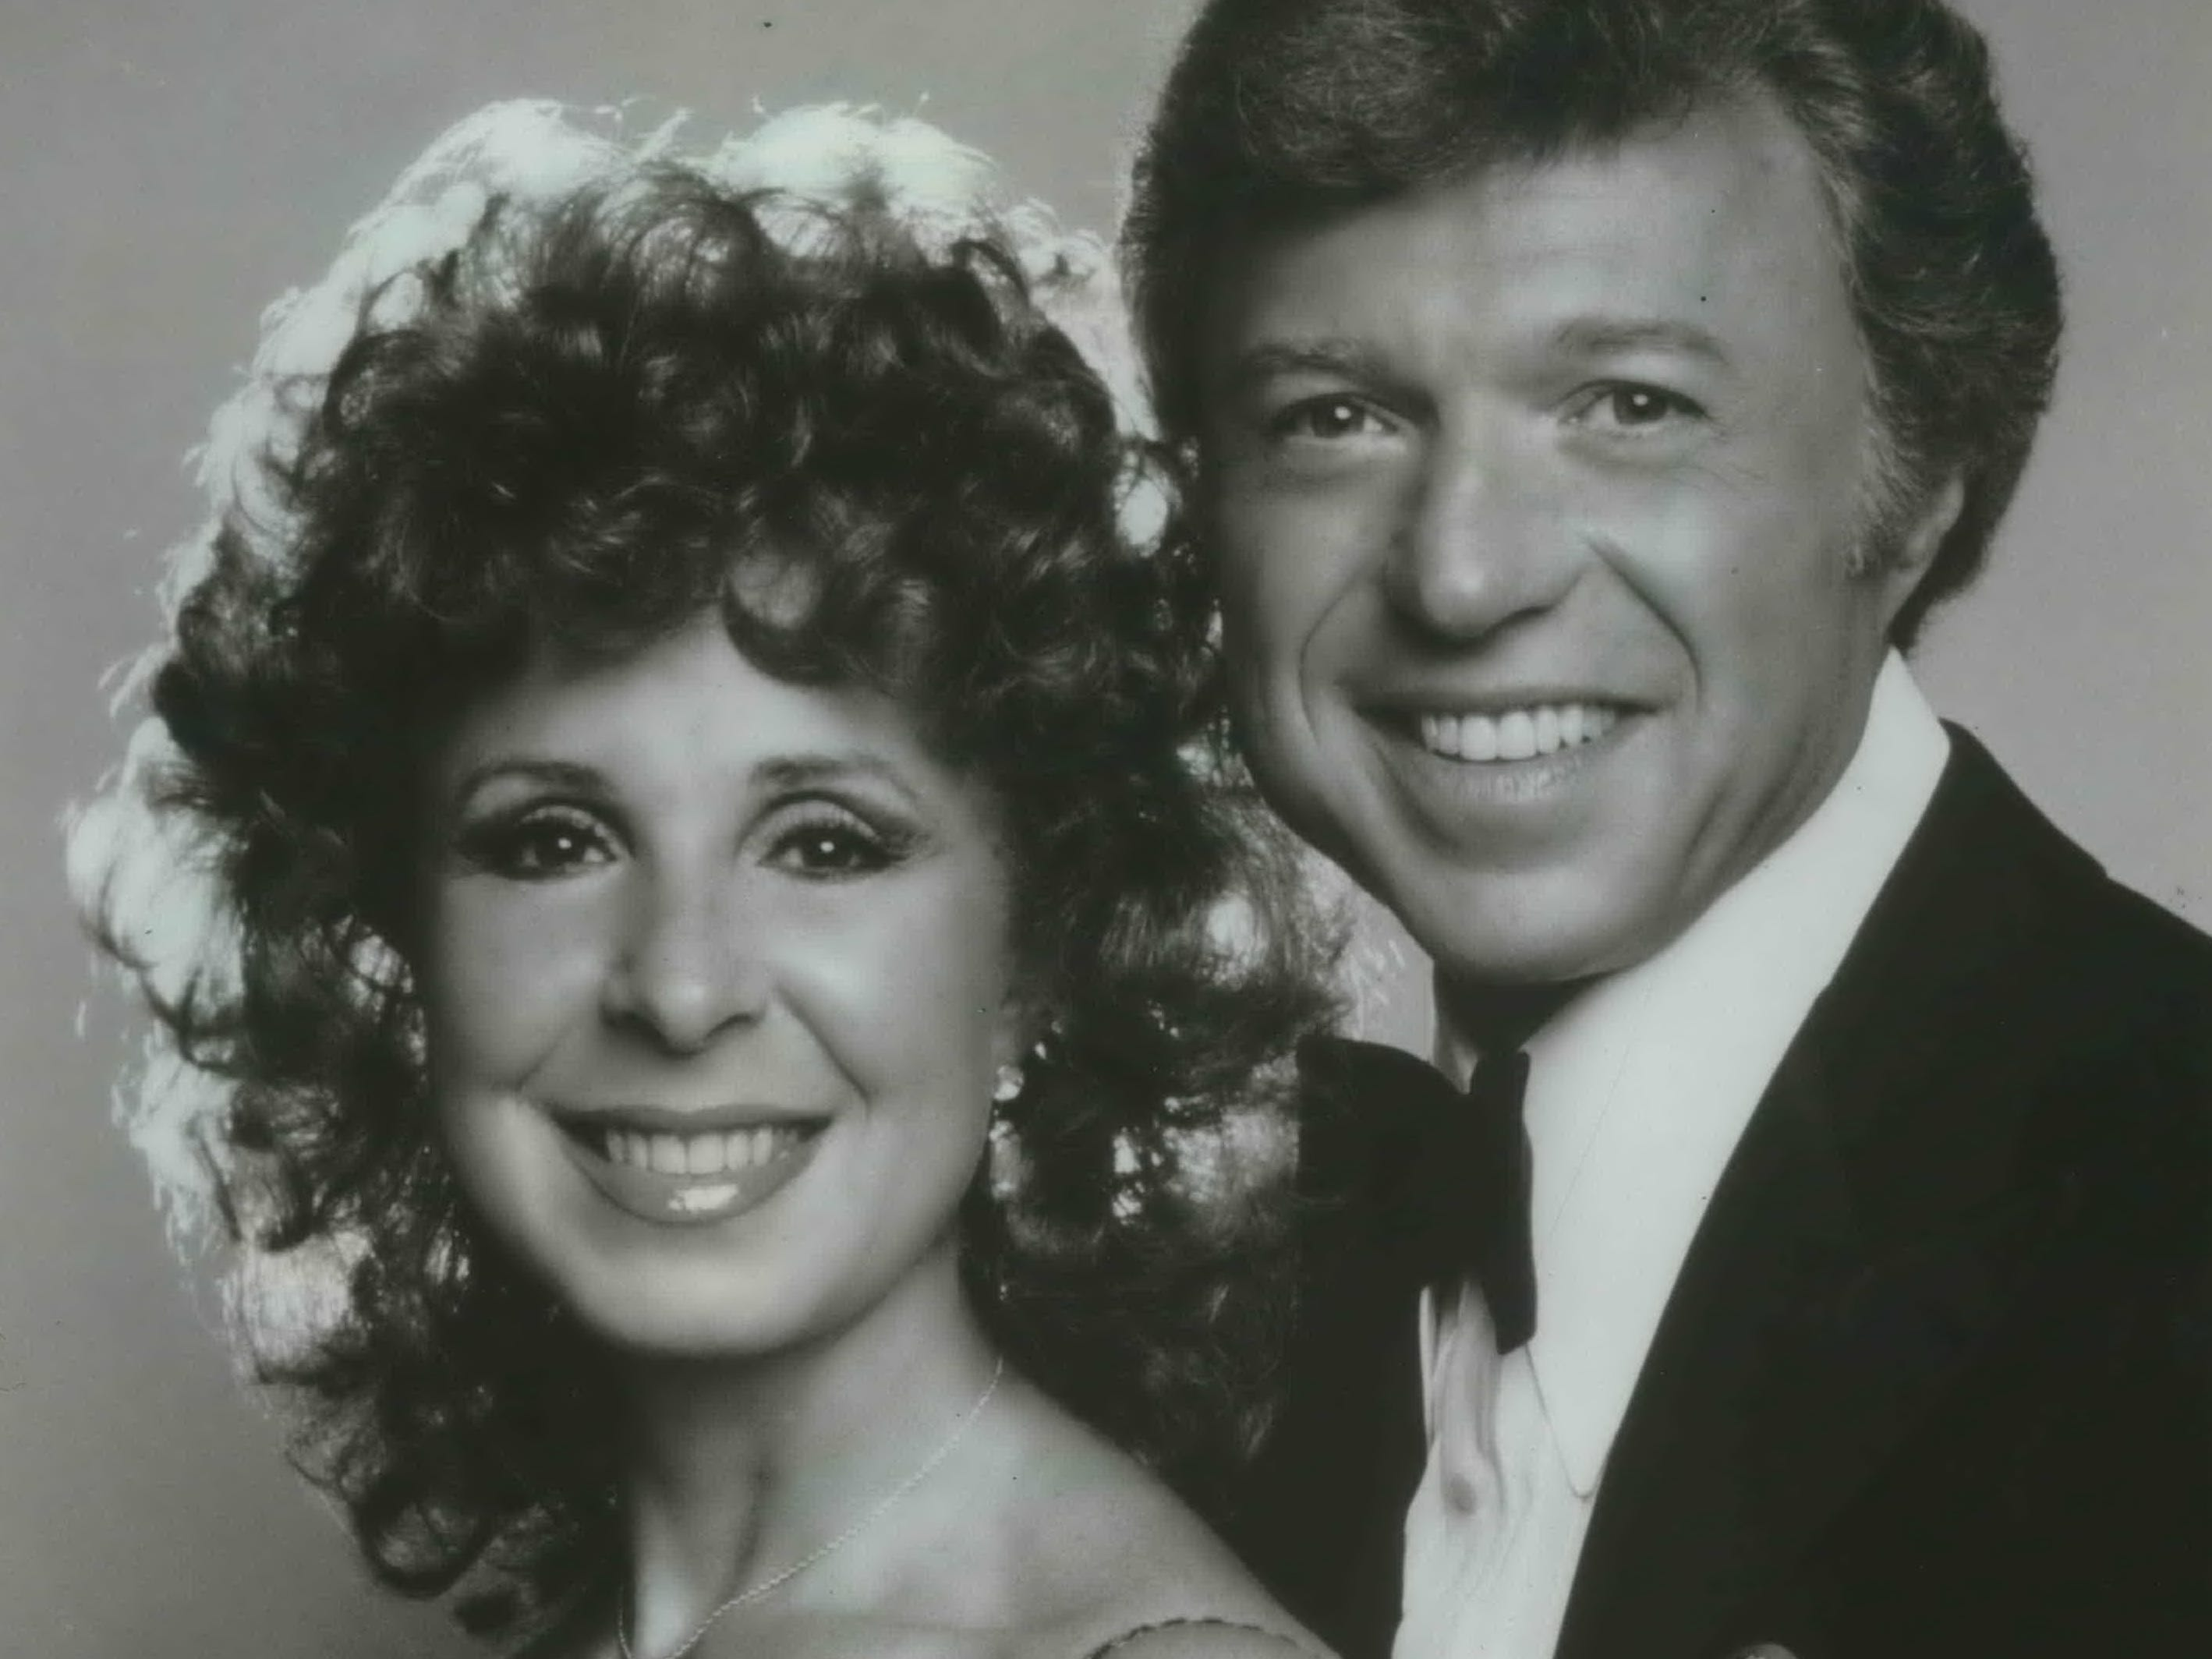 Two of the most popular and durable stars of American popular music, Steve Lawrence and Eydie Gorme, will perform in concert in Uihlein Hall at the Performing Arts Center on Monday, June 18, for one show only. The Grammy-winning couple have one of show business' longest-lasting marriages and will be singing together in Milwaukee for the first time. The singers' concert of classic pop songs will be backed by a full orchestra. Tickets go on sale Sunday at the PAC box office and at Ticketron outlets. Eydie Gorme.